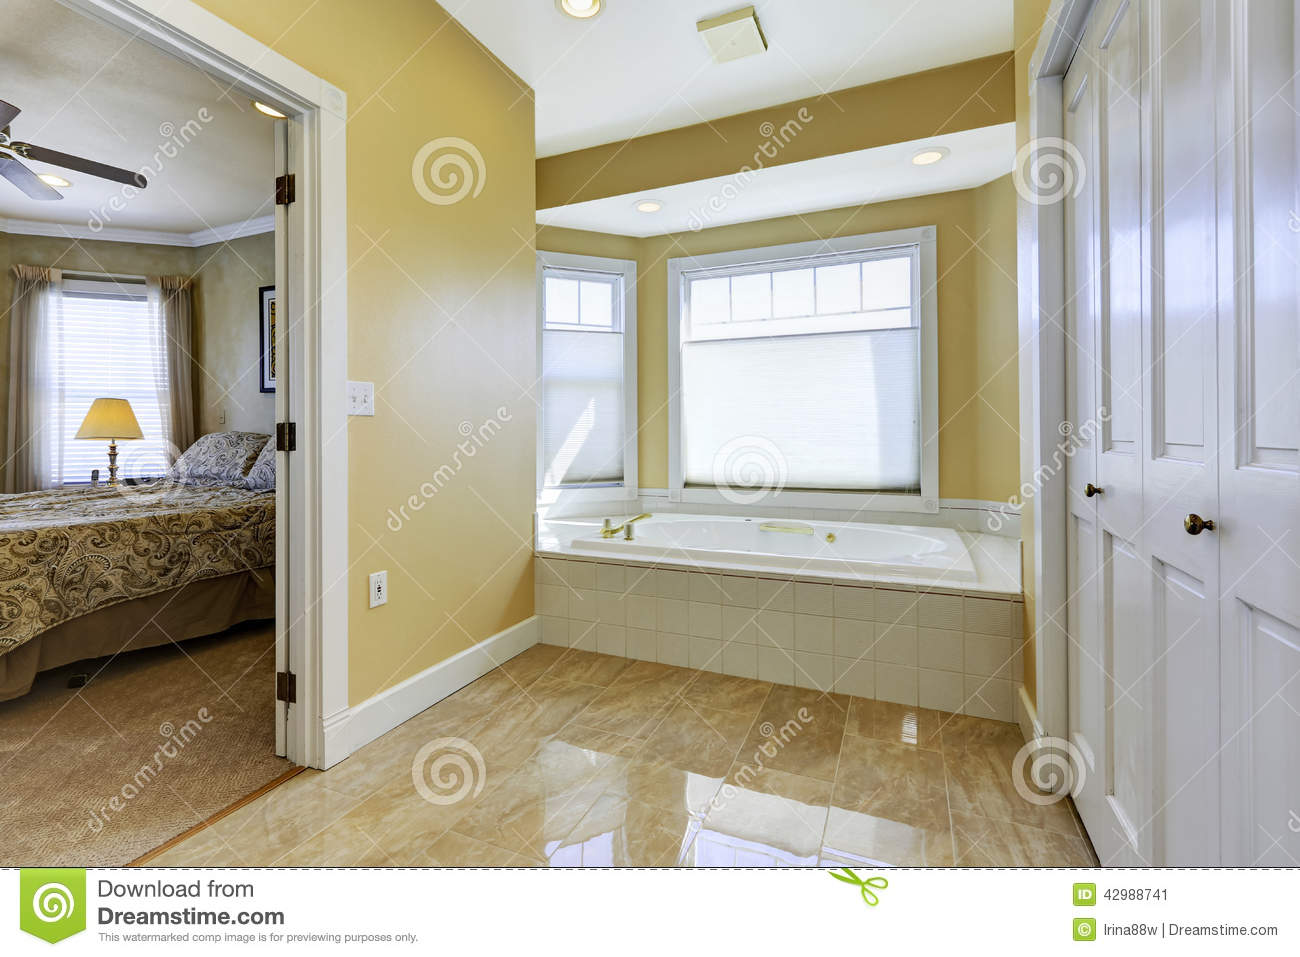 Bathroom With Shiny Tile Floor In Master Bedroom Stock Image Image Of American Ivory 42988741